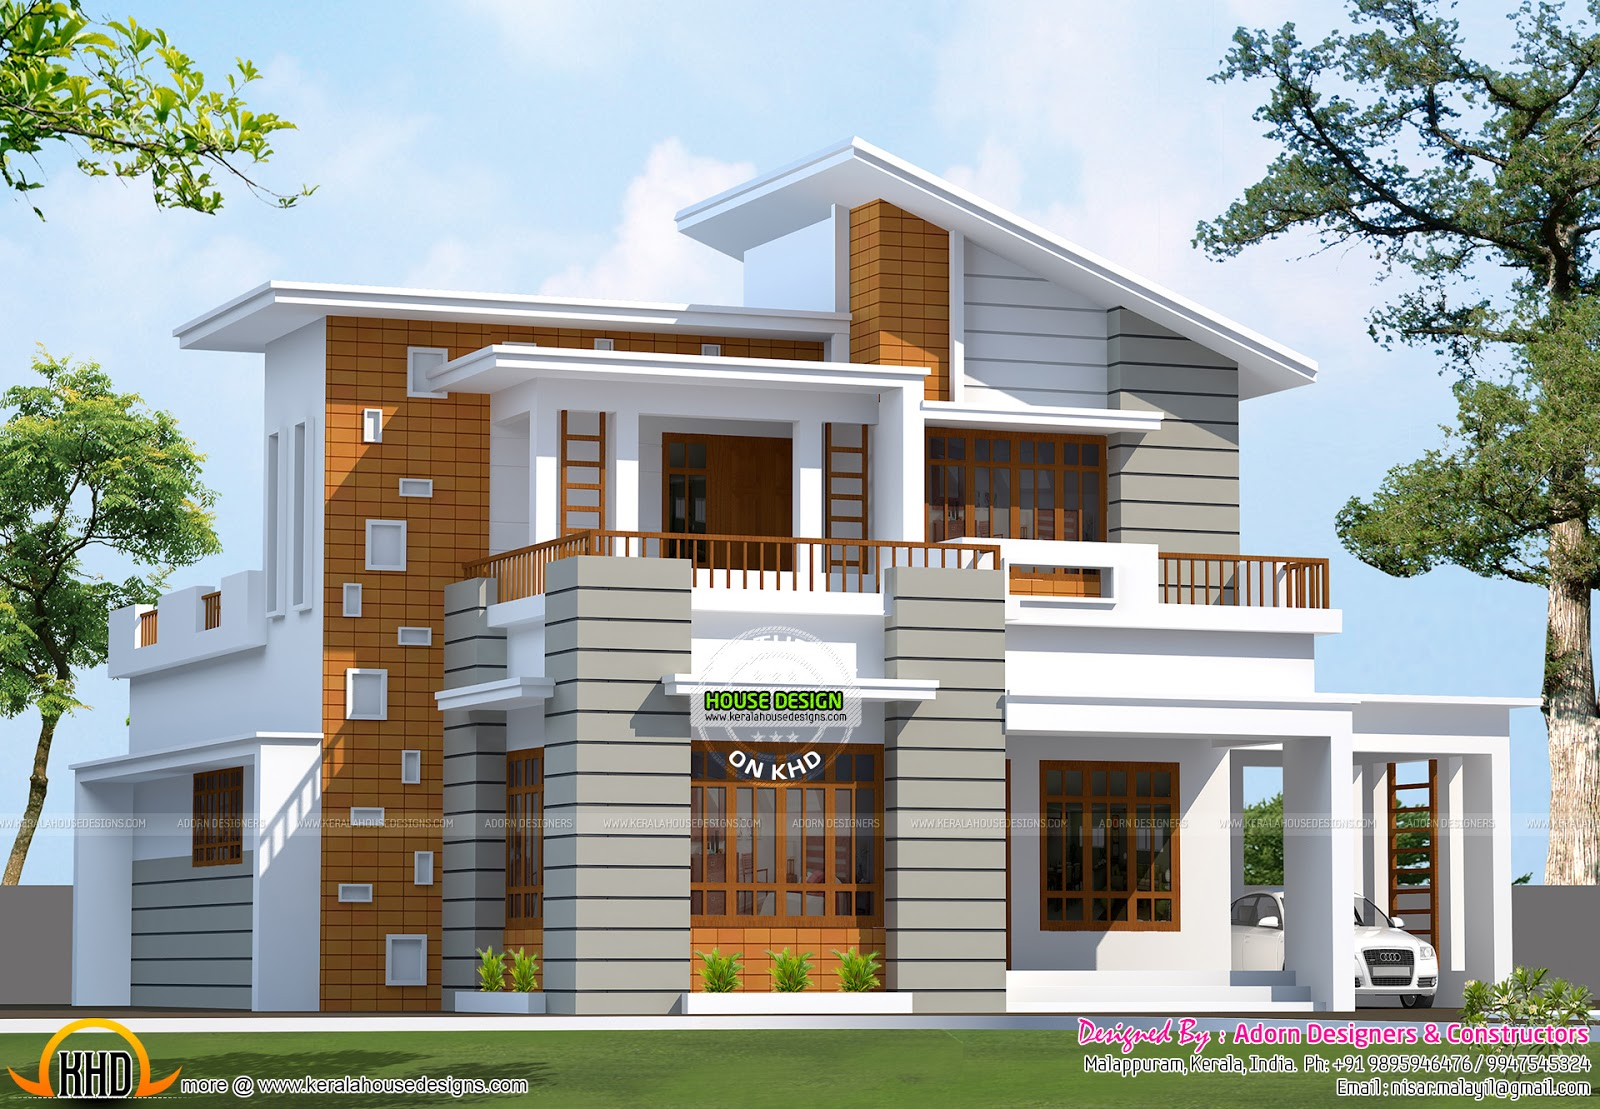 Indian house outlook design for Modern house plans for 1600 sq ft